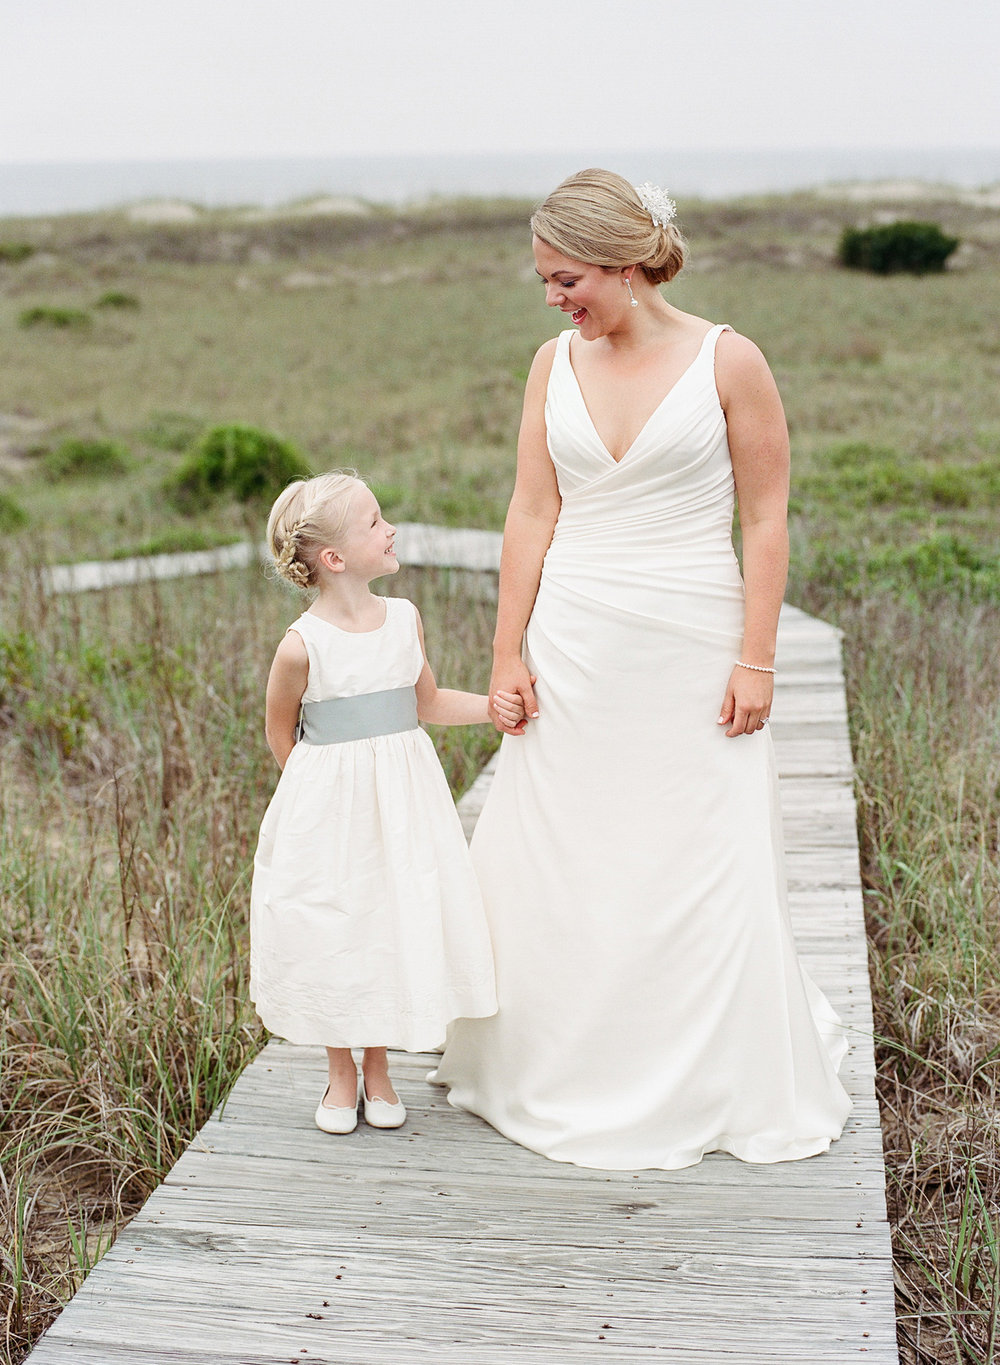 Bald Head Island Wedding Film Photographer 15.jpg